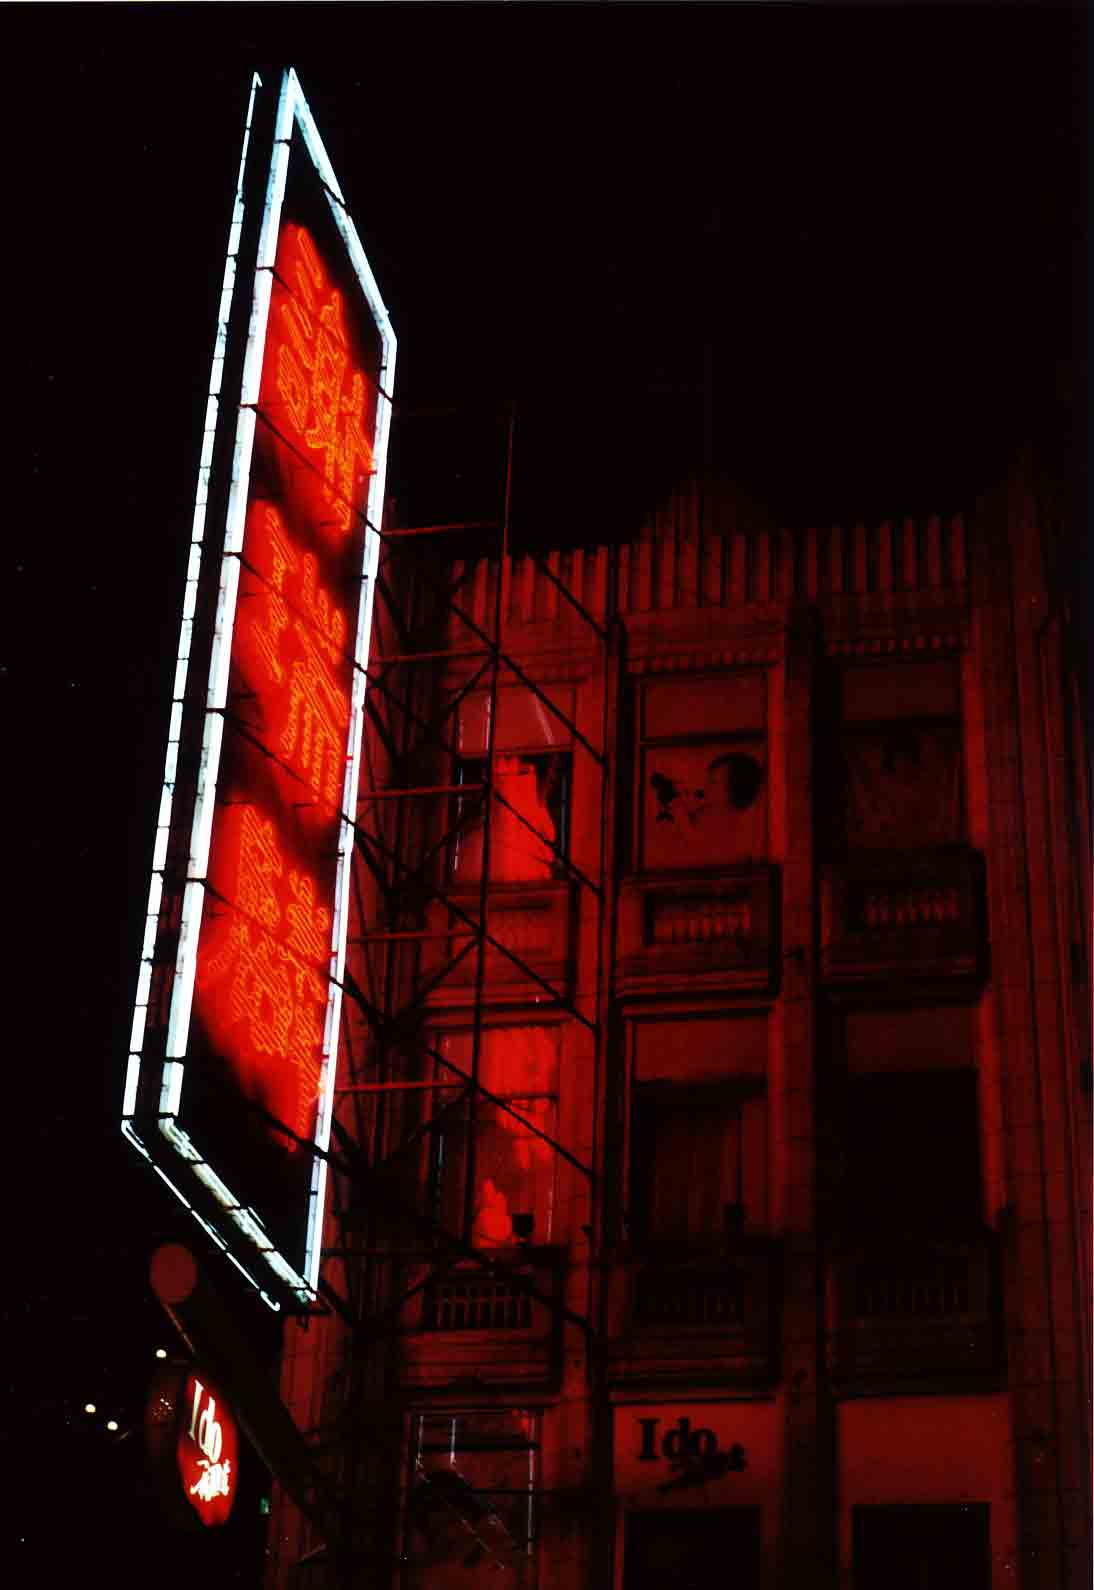 lights-on-building.jpg